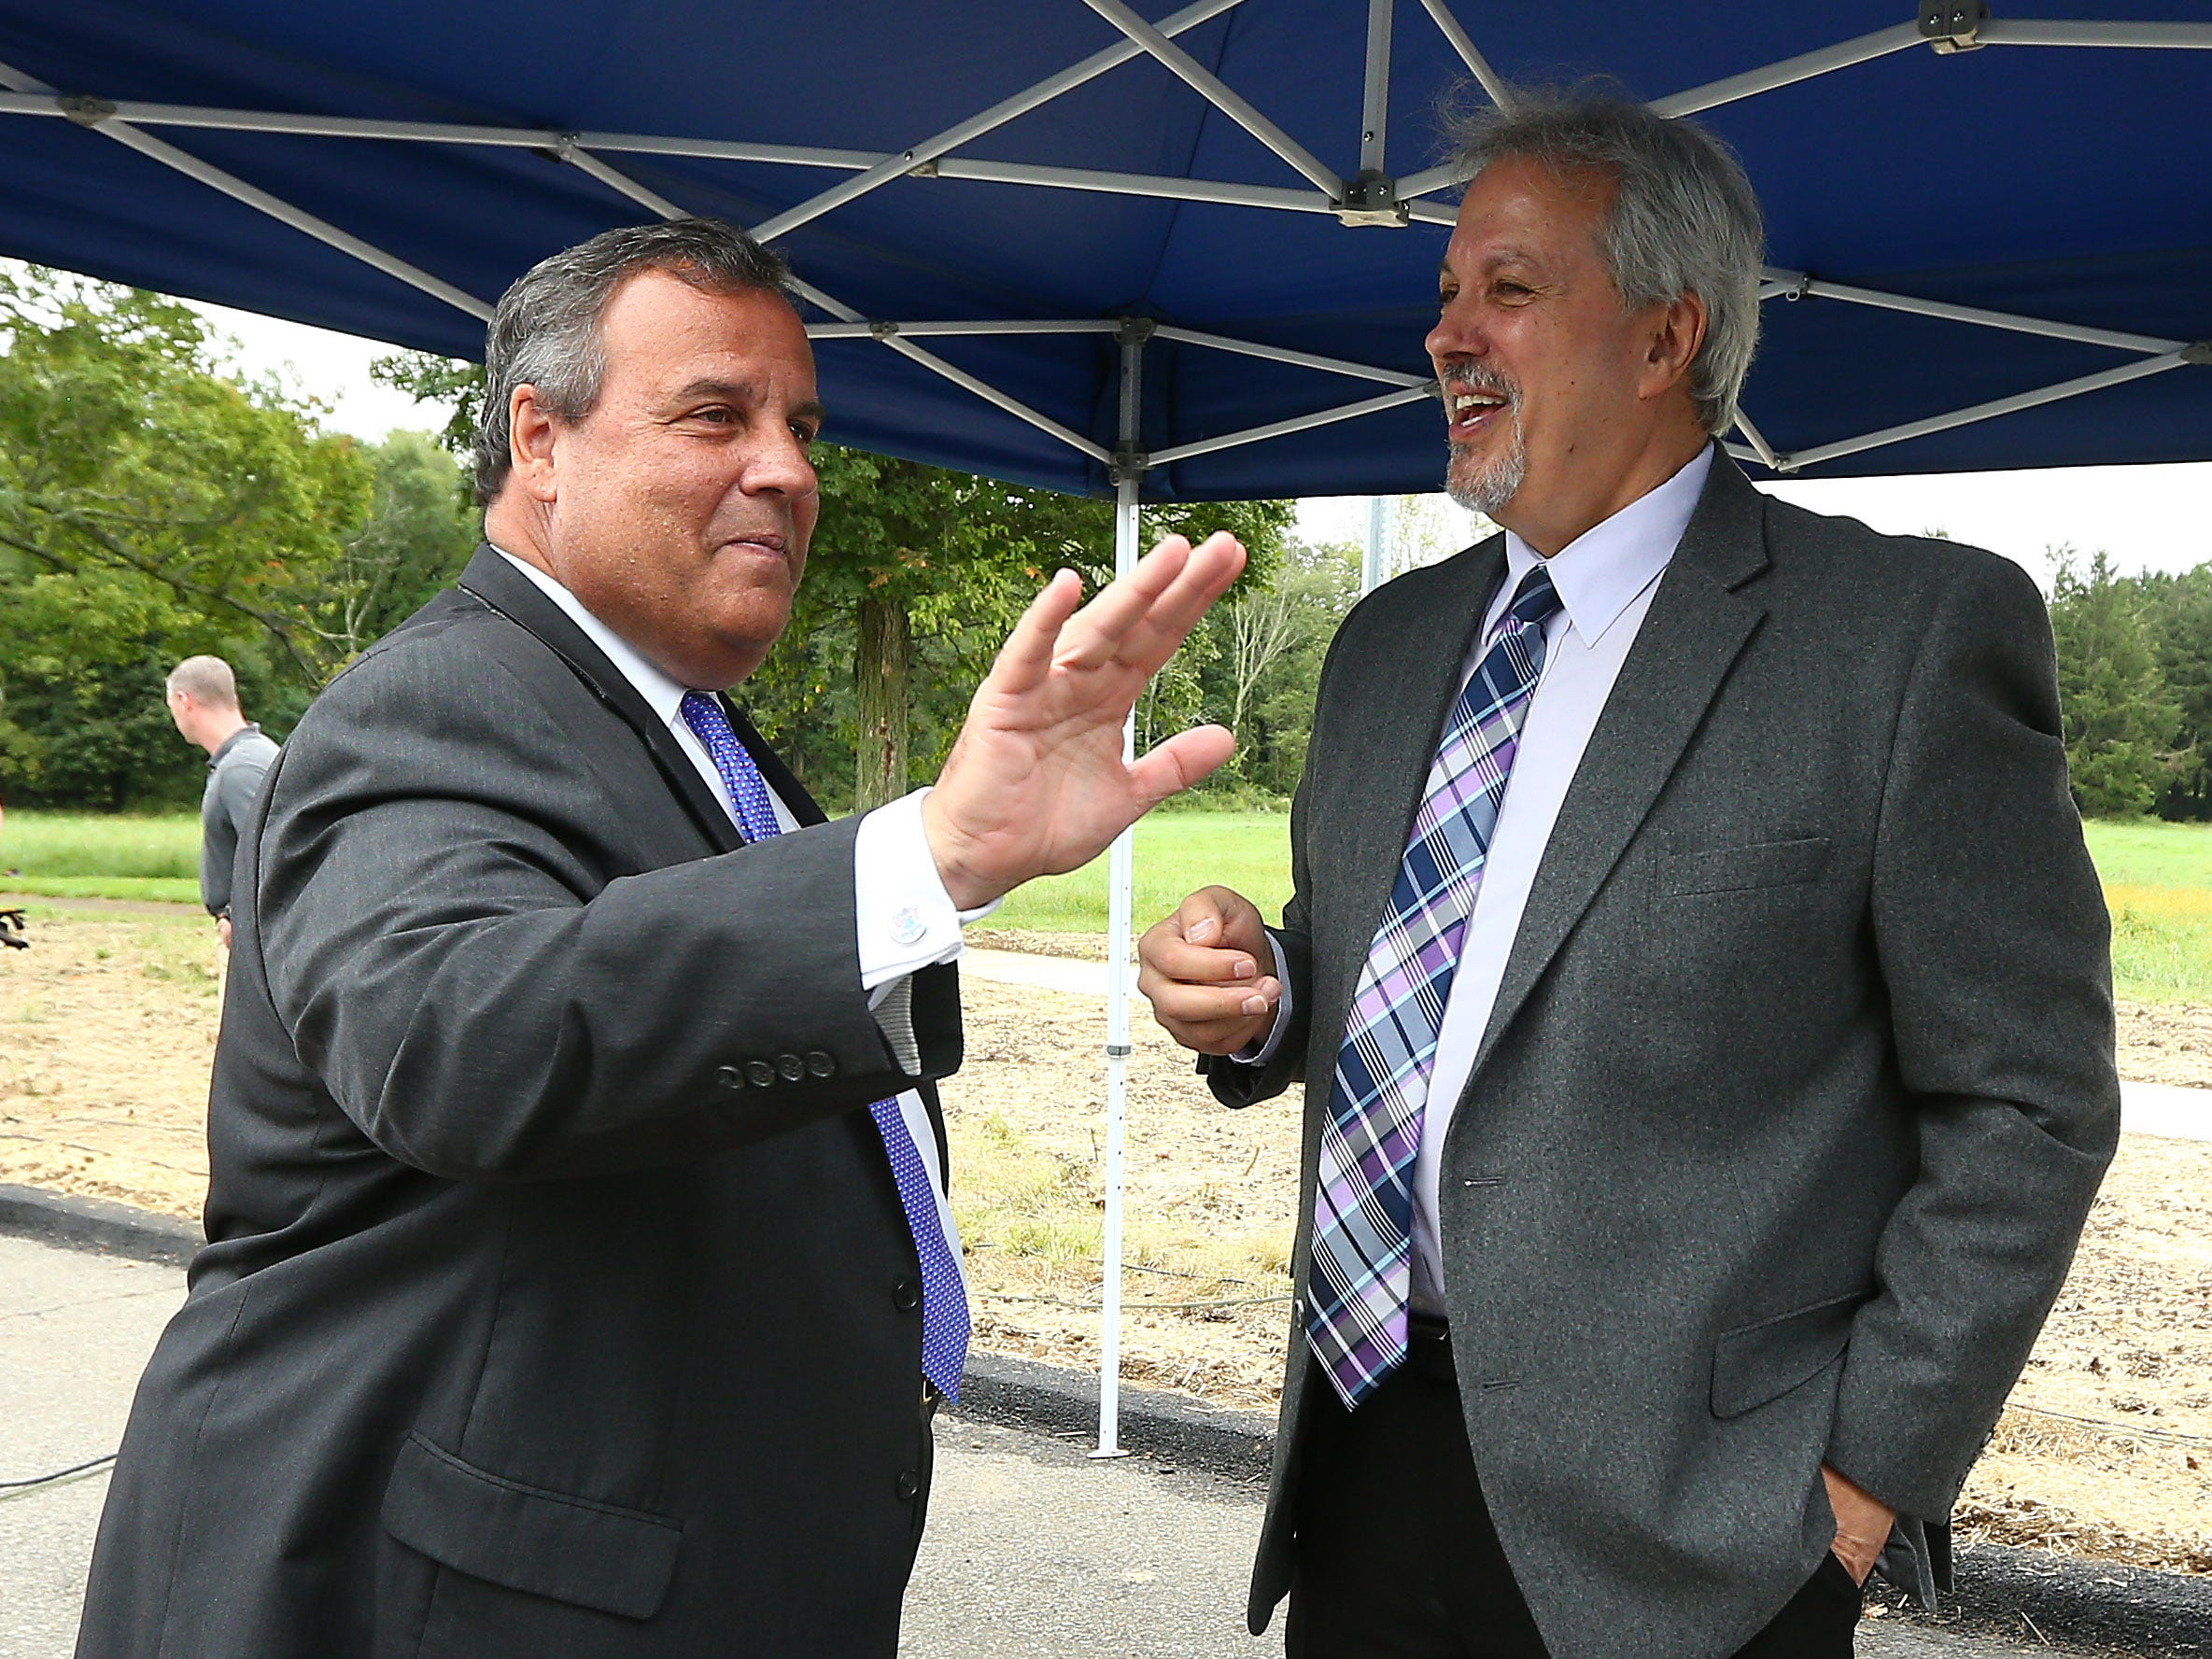 Former New Jersey Gov. Chris Christie, l, talks with Larry Ragonese, Morris County Communications Director as Morris County freeholders formally open Gov. Chris Christie Drive, a new main access road to Central Park of Morris County. September 12, 2018, Morris Plains, NJ